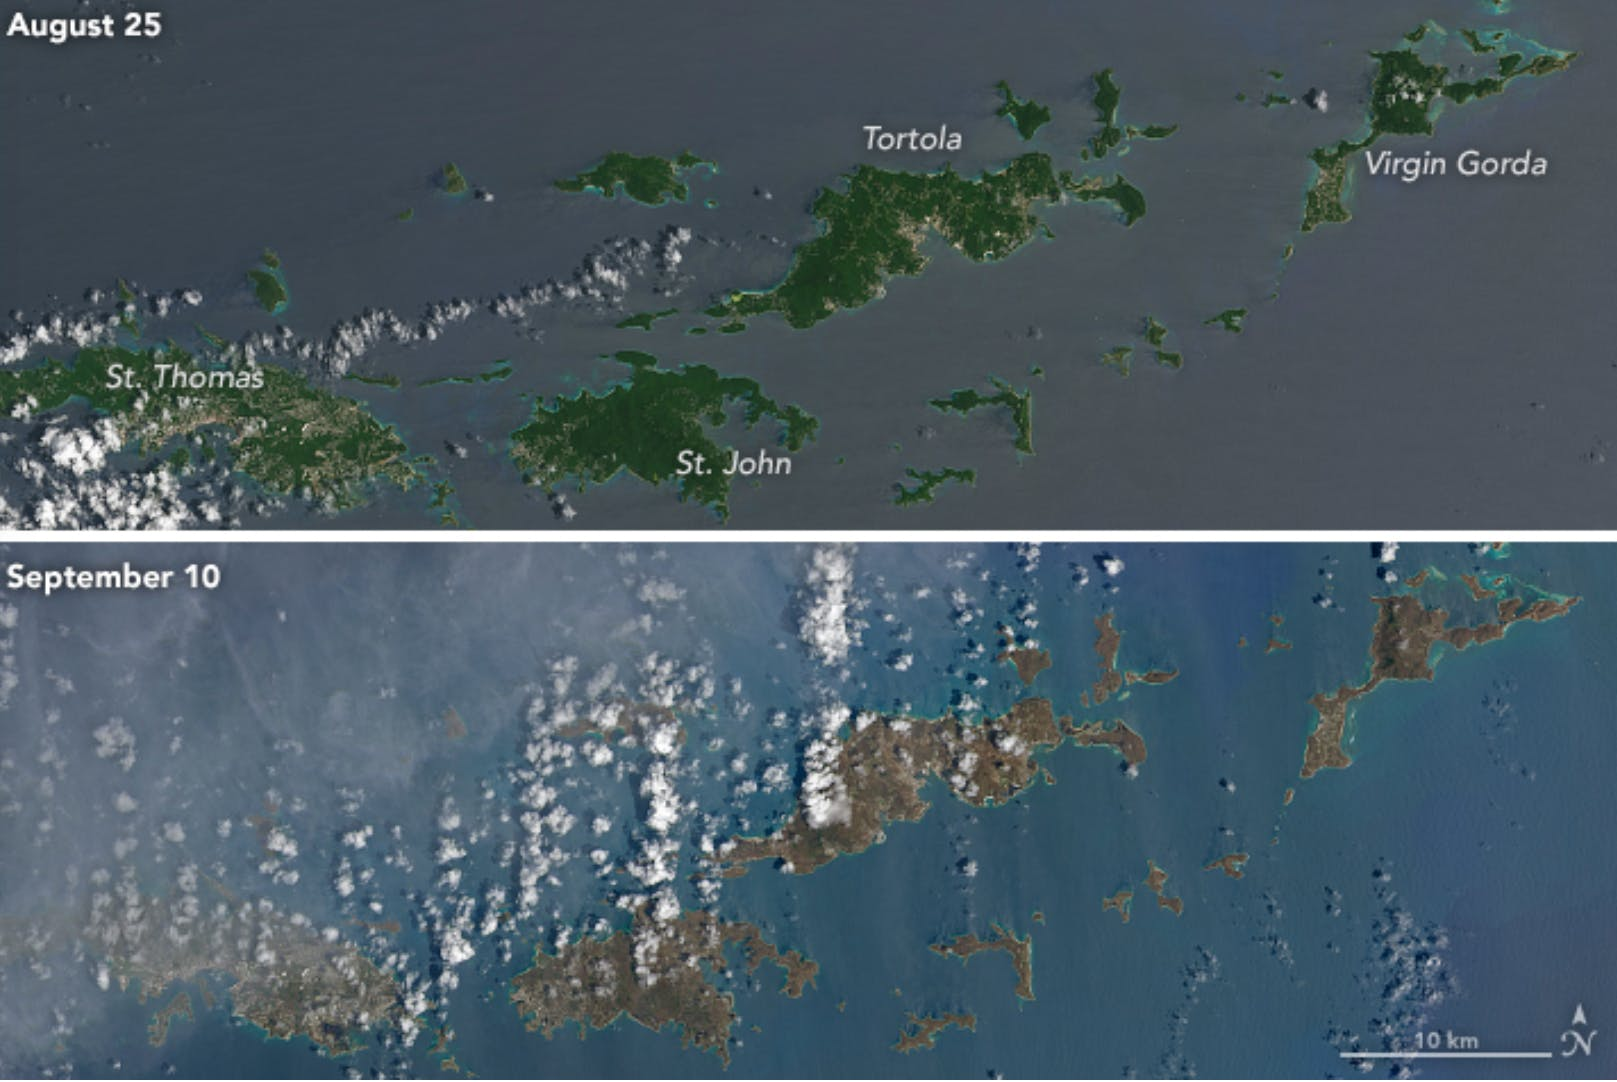 A side-by-side comparison shows the effects of Hurricane Irma, turning islands in the Caribbean brown